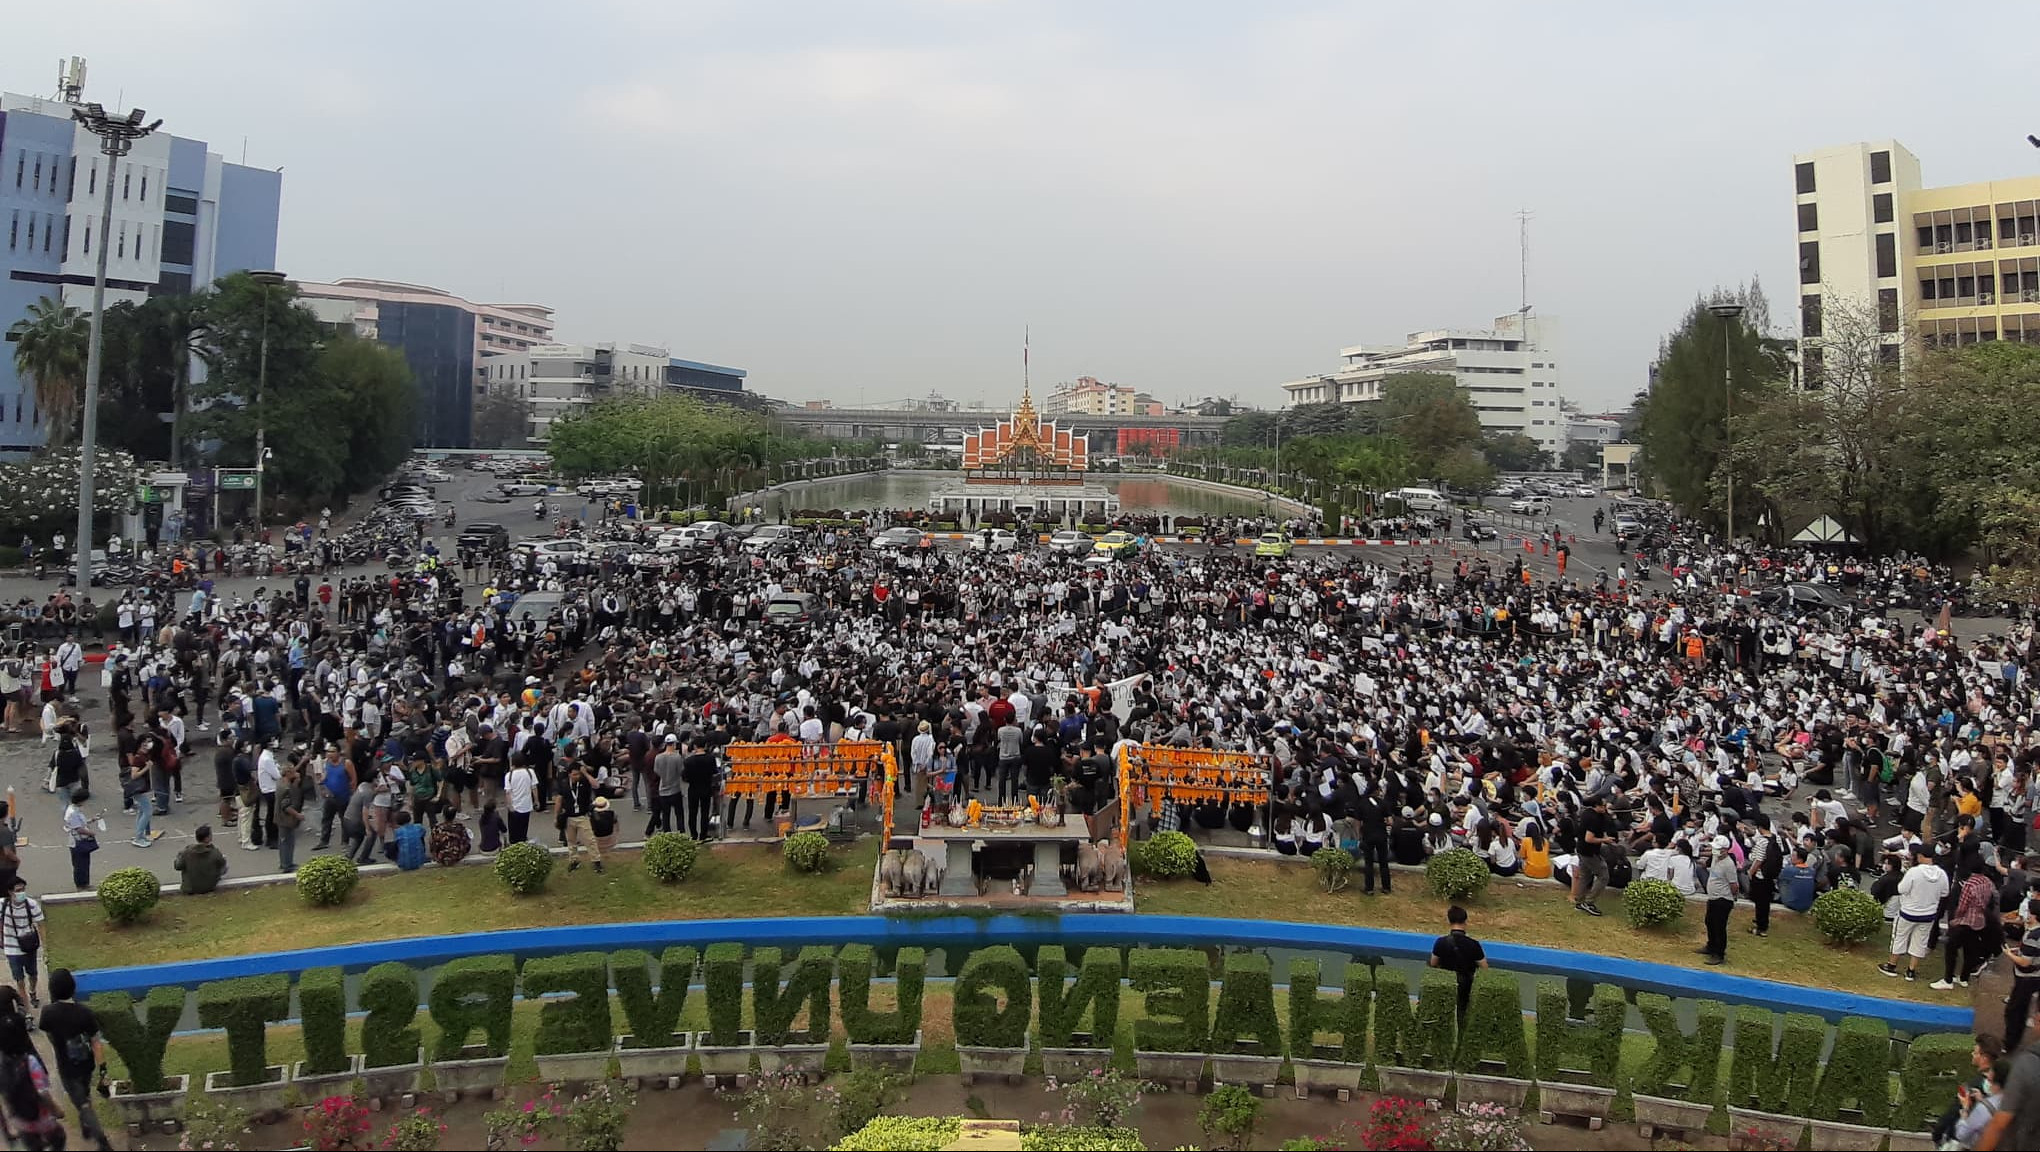 A bird-eye view of the demonstration at Ramkhamhaeng University on 27 February showing the thousands of protestors filling the plaza.